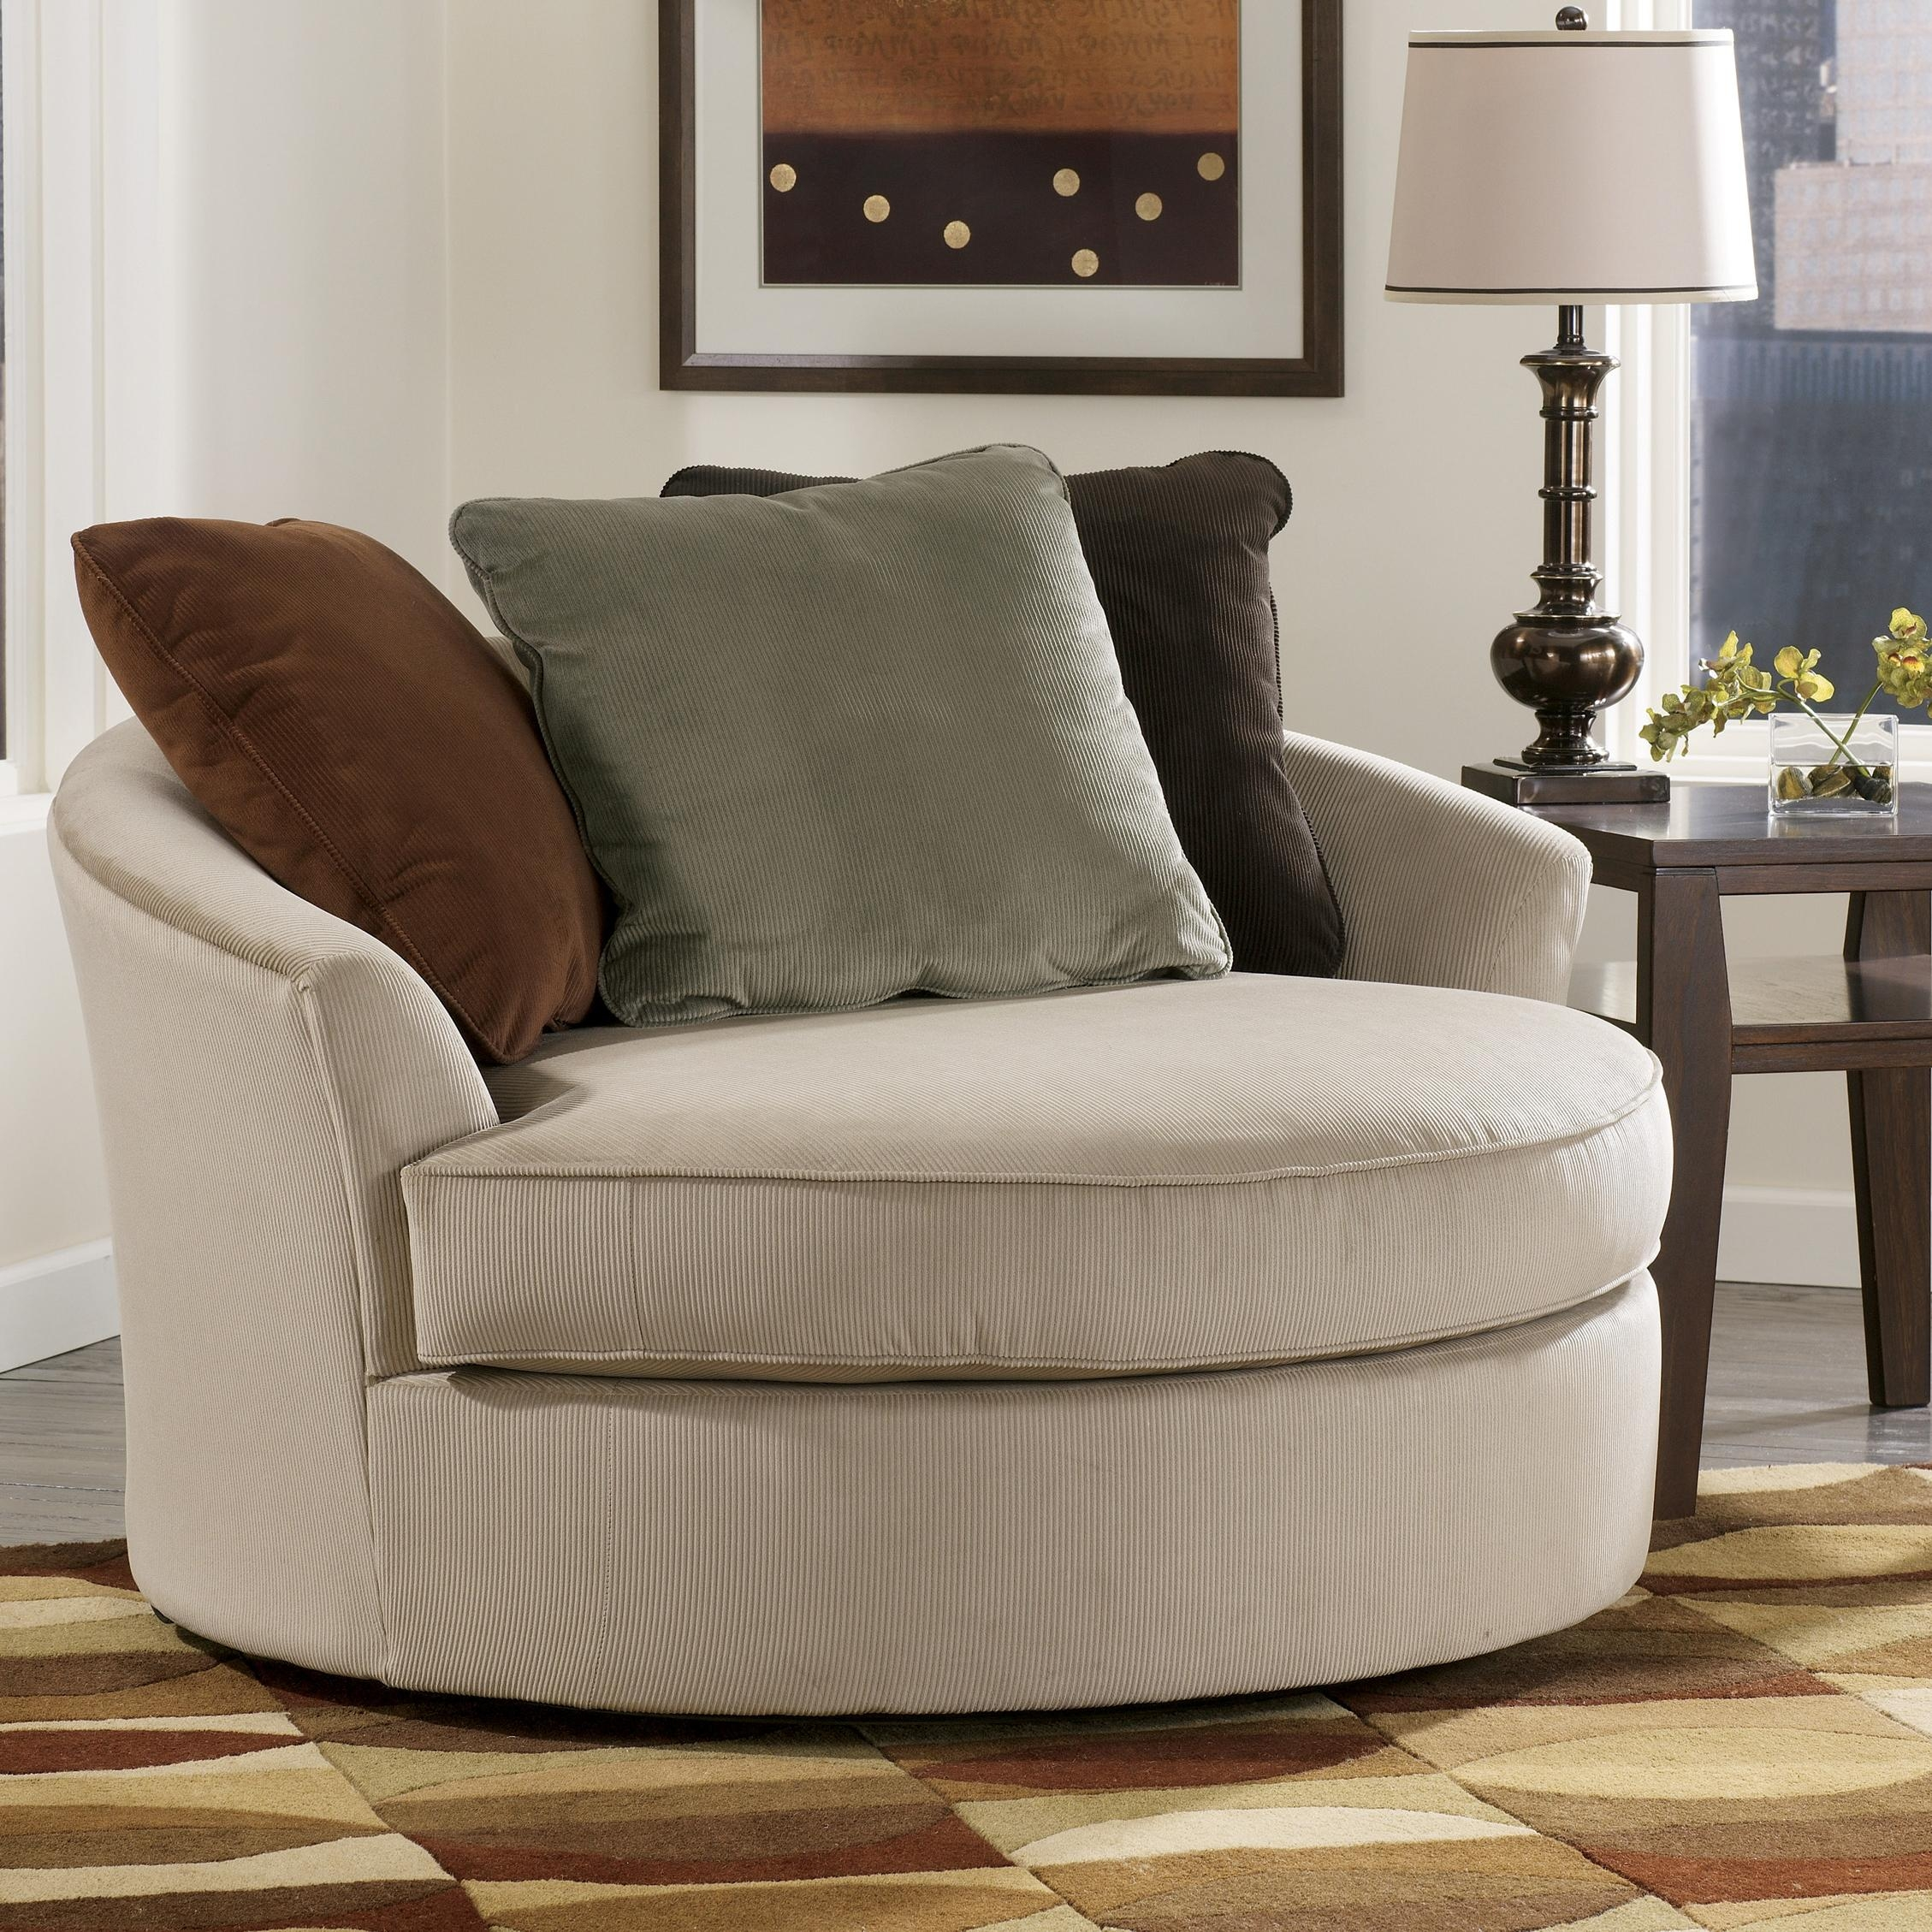 Laken Oversized Round Swivel Chair Signature Design Ashley Intended For Round Sofa Chairs (Image 7 of 15)